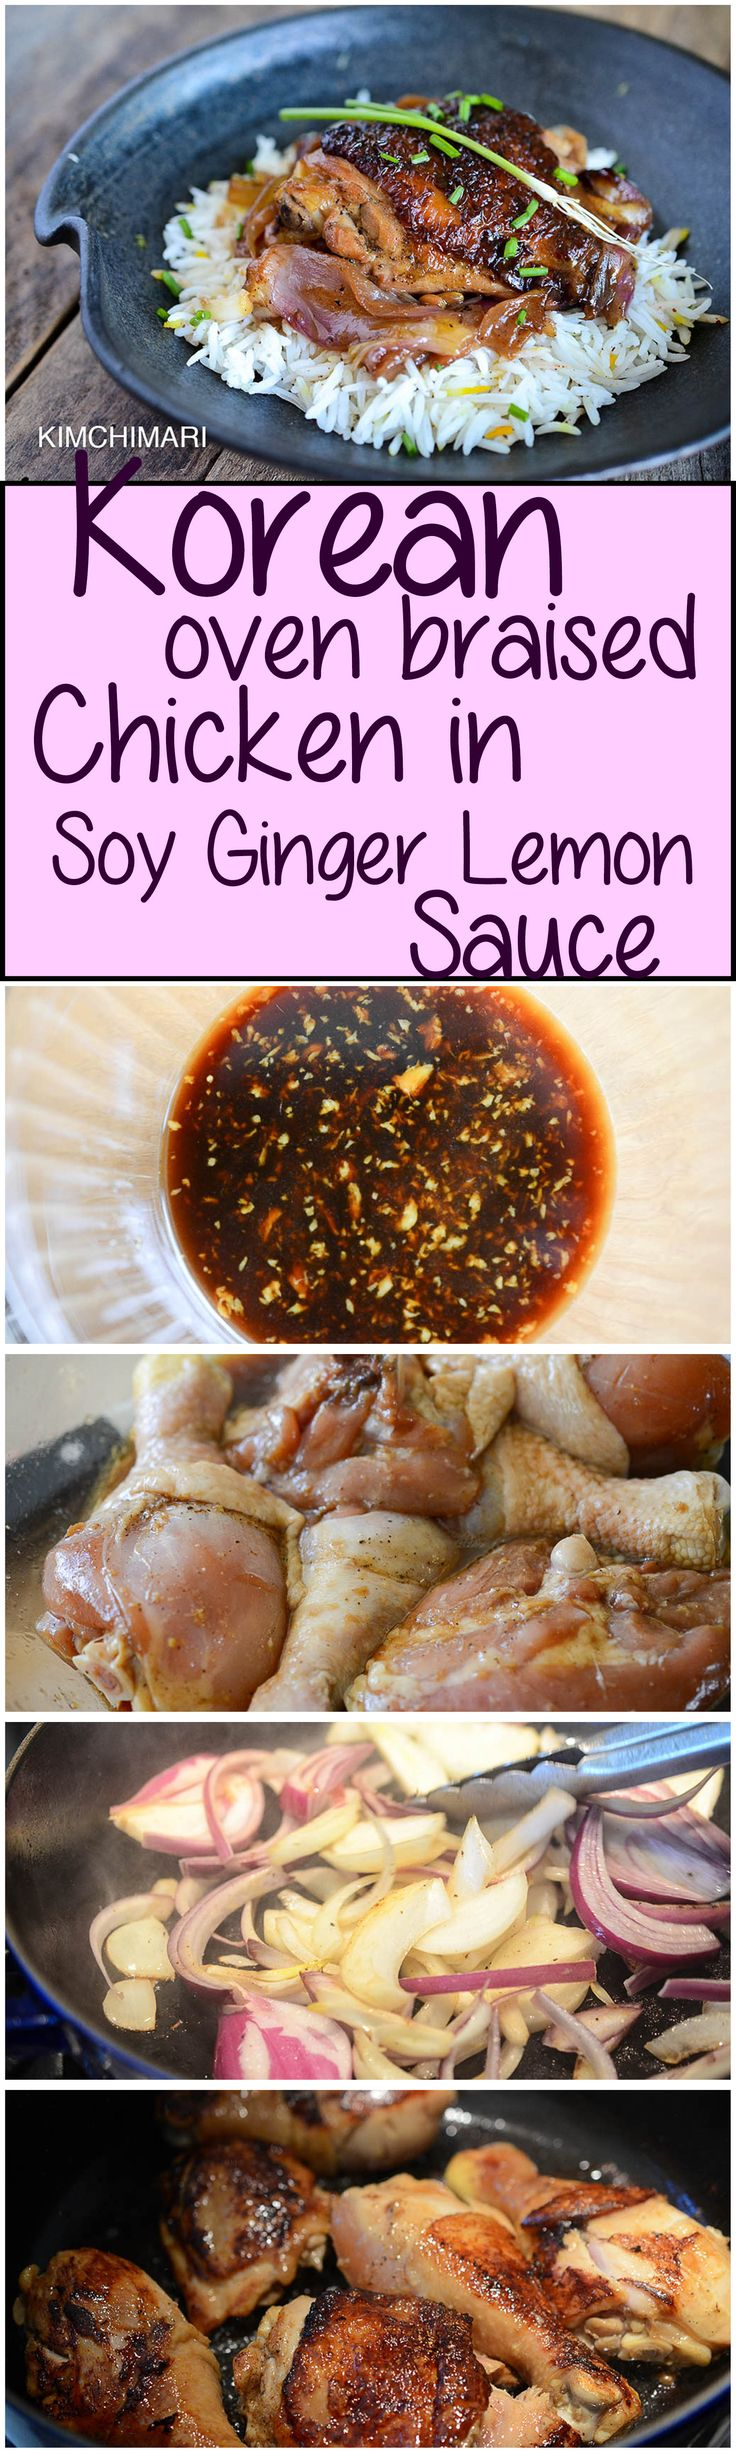 Marinated chicken in soy sauce, ginger and lemon is seared and then braised in the oven until tender and crisp. | Kimchimari.com